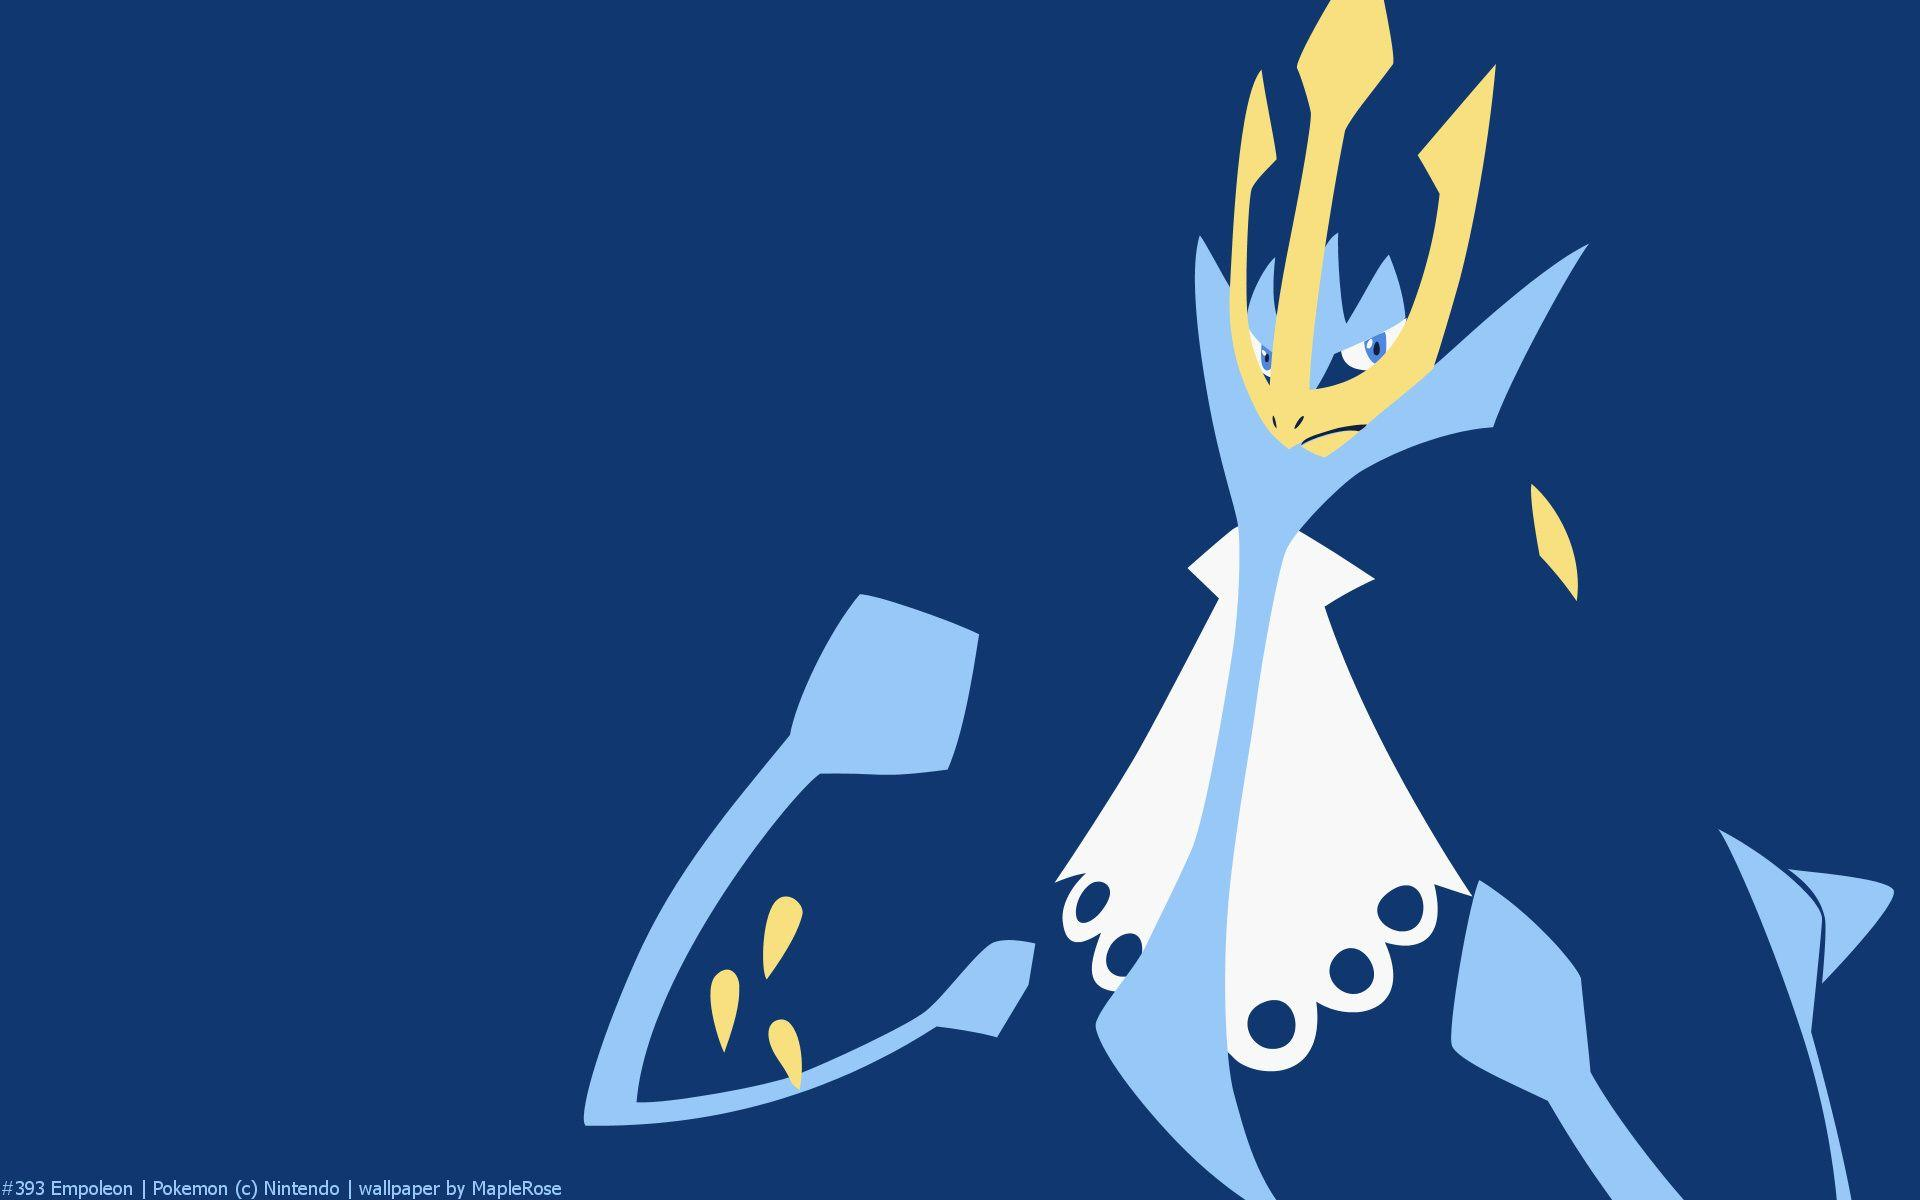 Empoleon Pokemon HD Wallpapers - Free HD wallpapers, Iphone ...